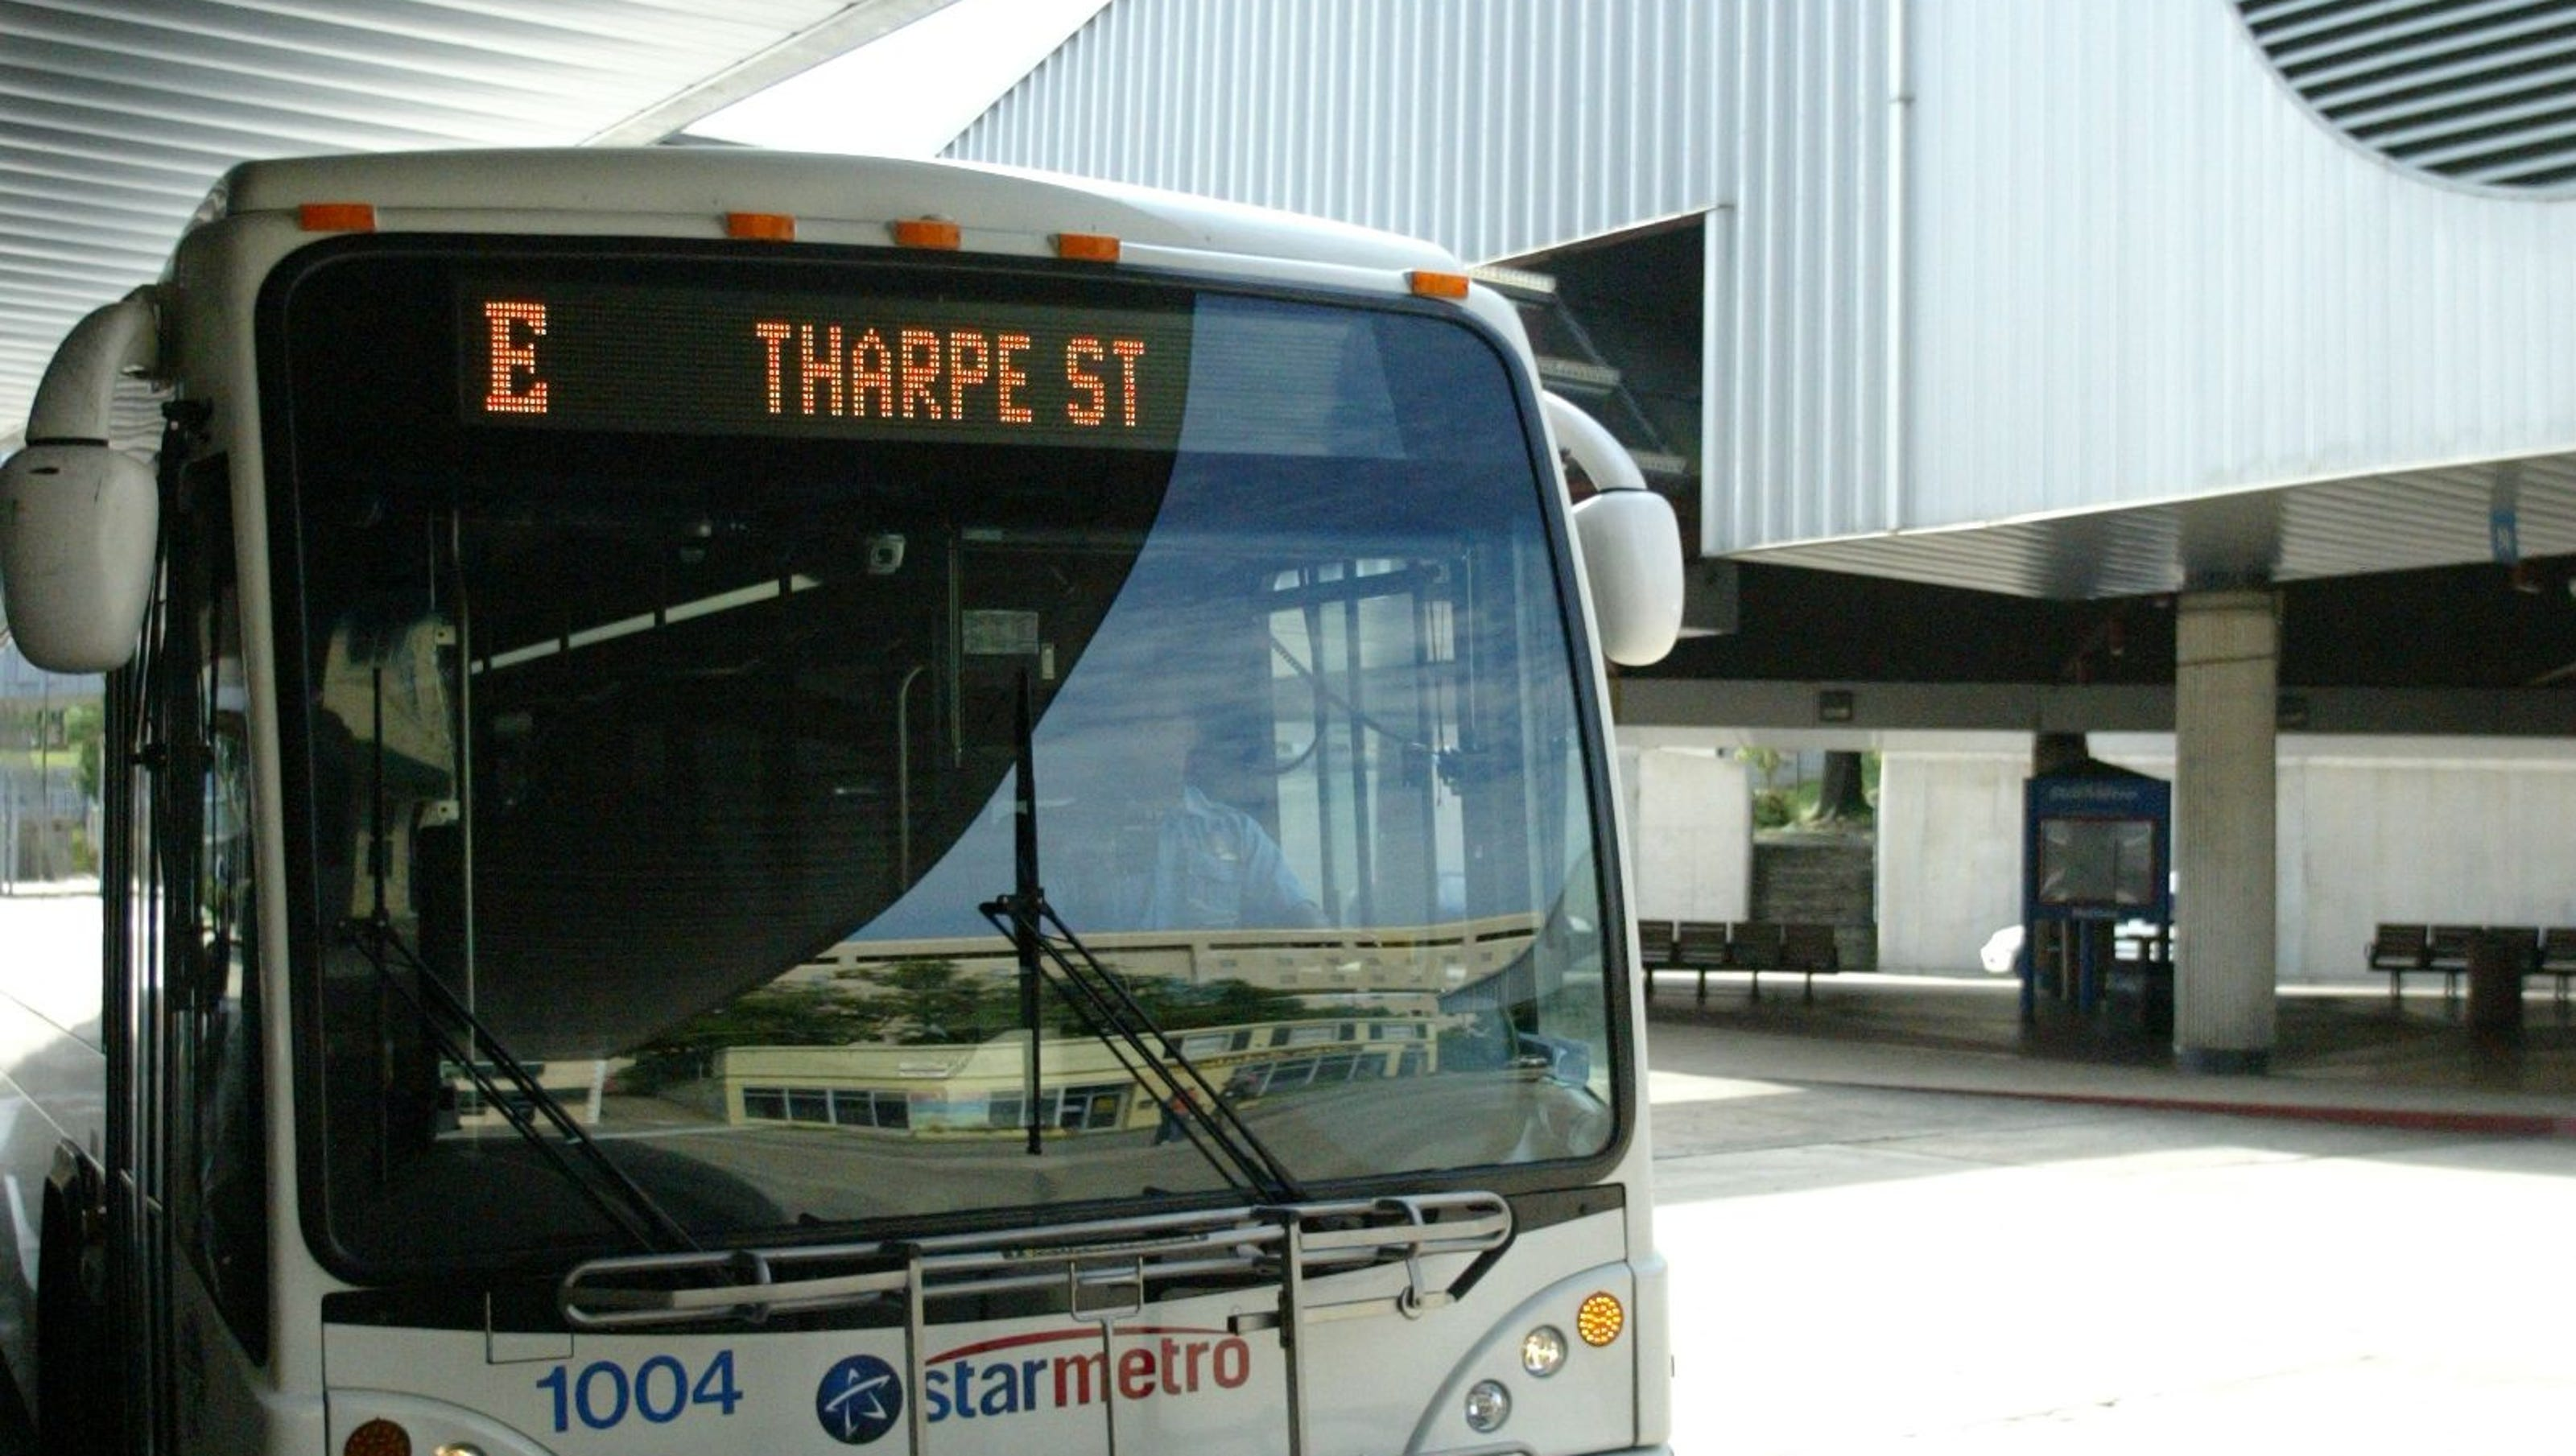 Free Starmetro Rides Thursday In Honor Of Transit Day